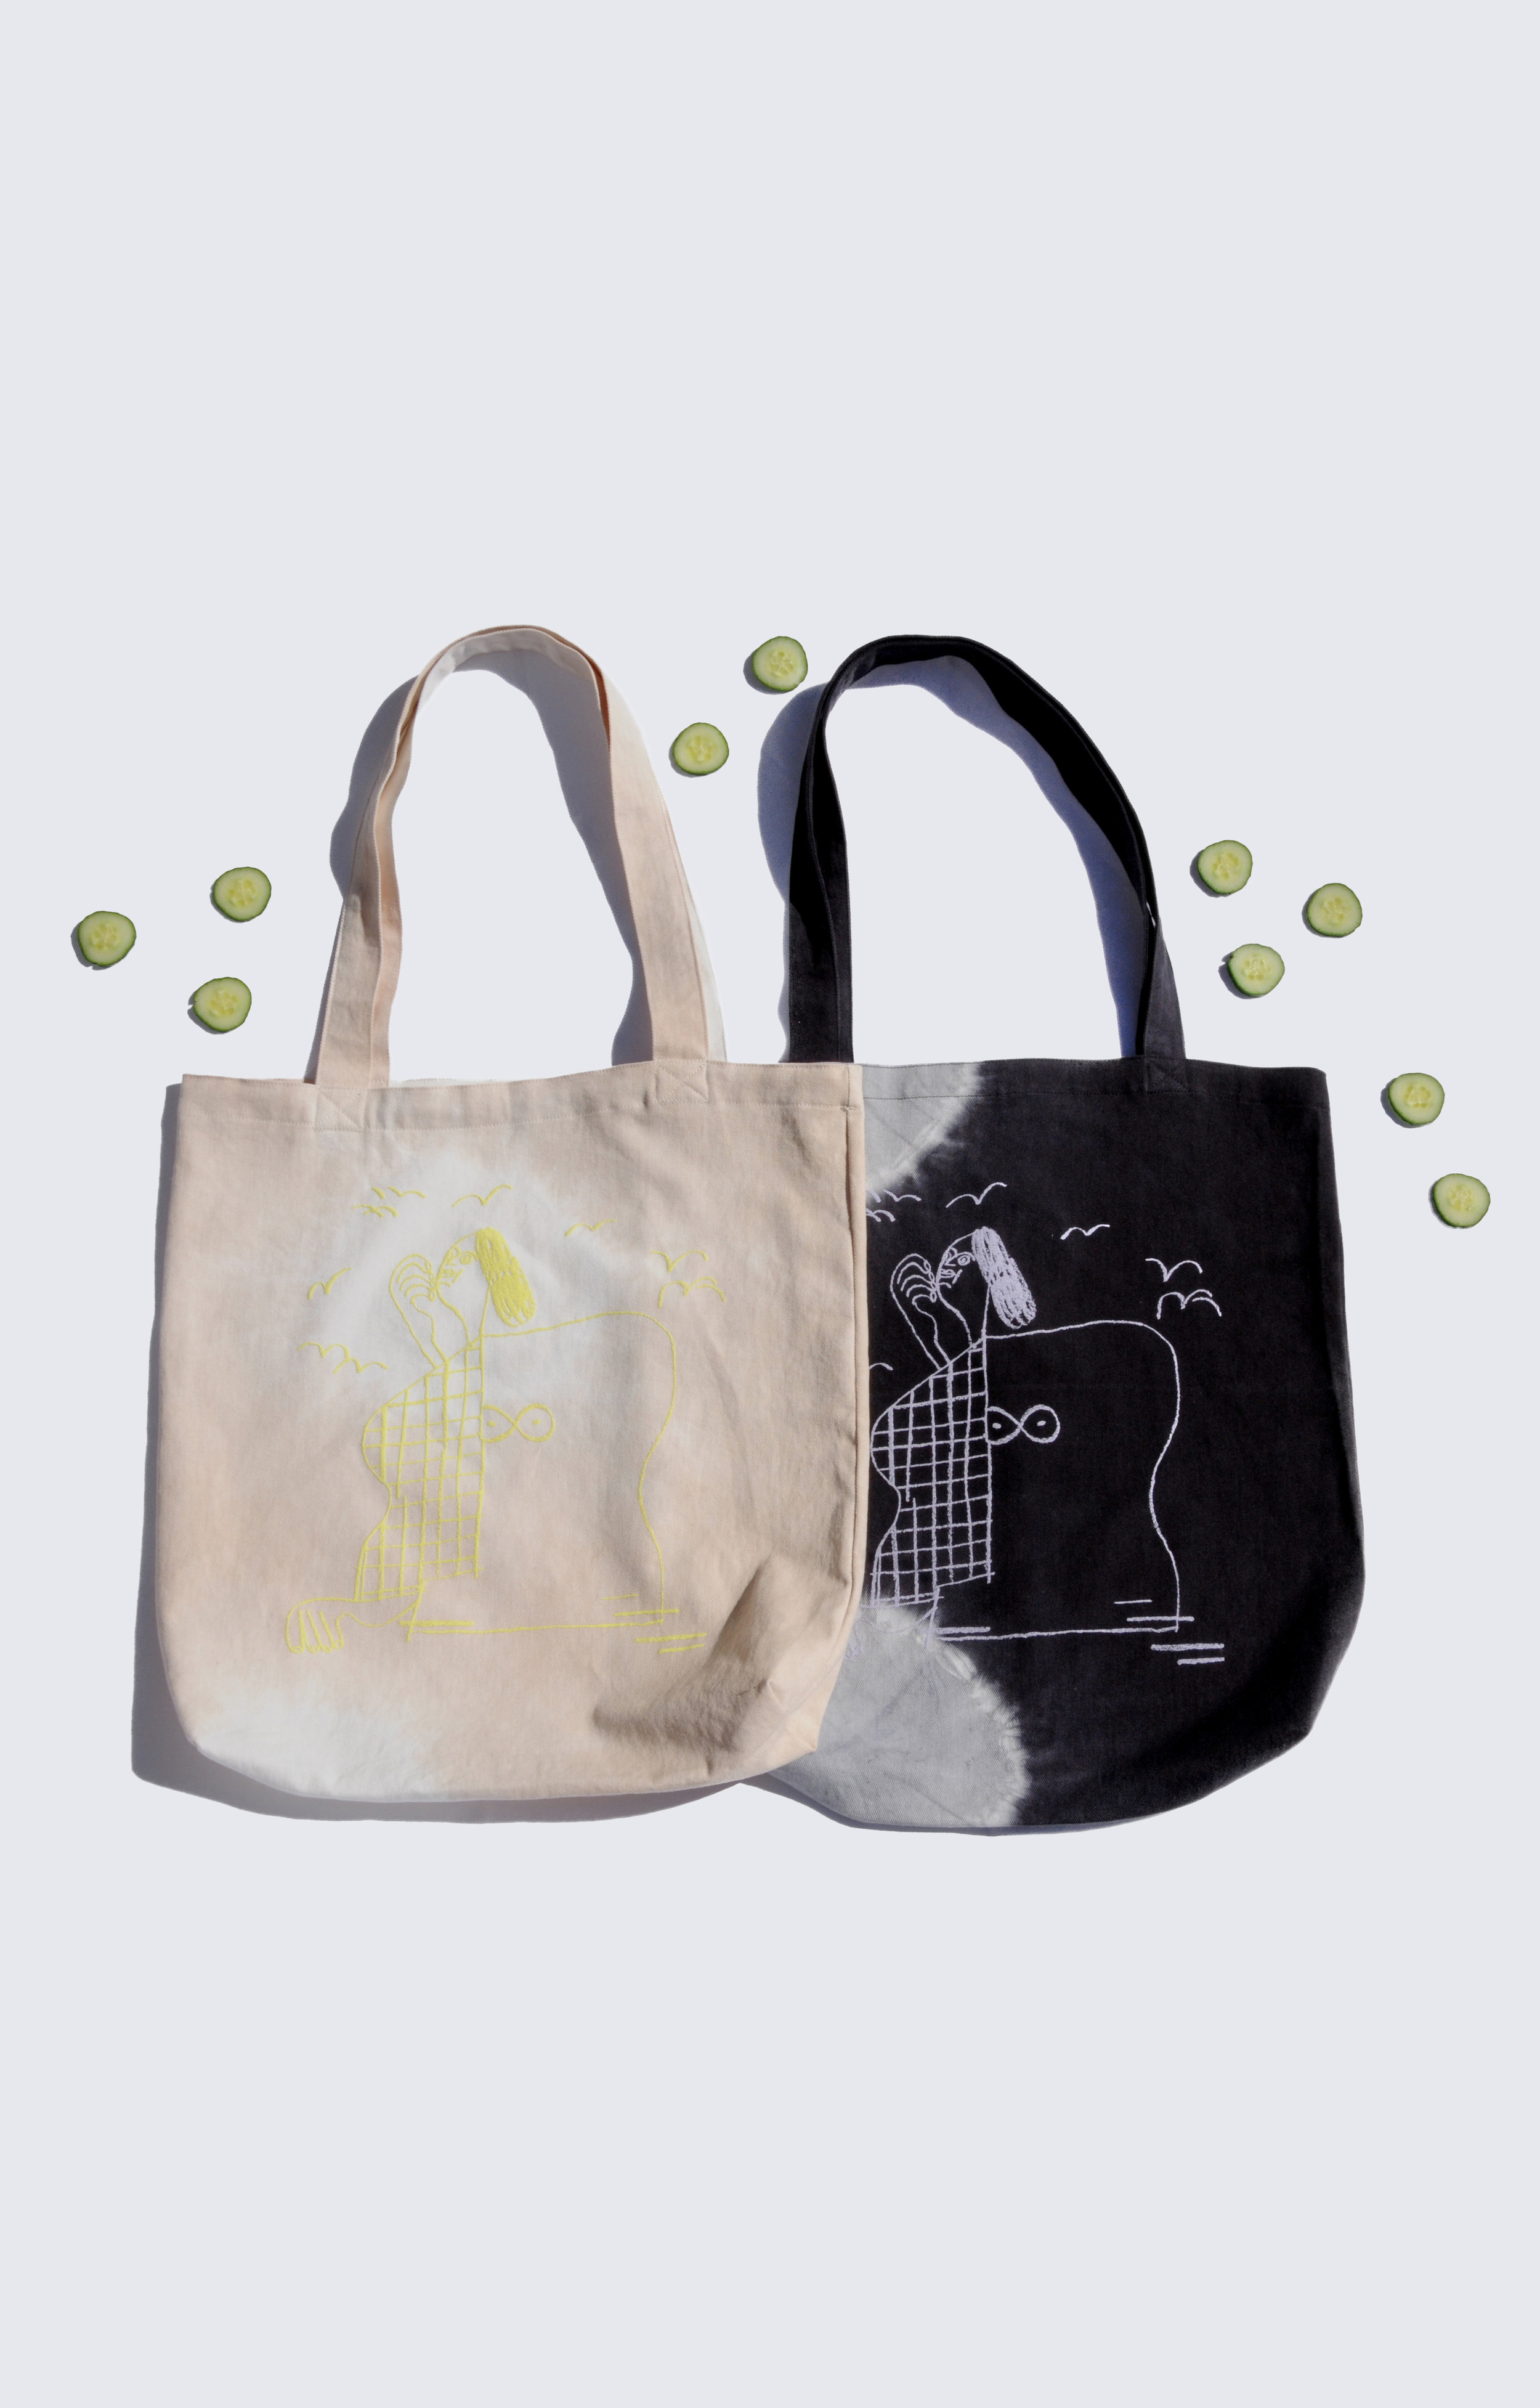 """essential tote - 0228COLOR : BLACK AND WHITE TIE DYE WITH LILAC PUFF PRINTORBEIGE AND WHITE WITH LIME GREEN PUFF PRINTARTWORK BY MARIA MIDTTUNFABRIC : TWILLCONTENT : 100% COTTONWHOLESALE $26 / RETAIL $52SIZES : ONE SIZE / 20"""" X 18"""" BAG WITH 30"""" STRAPS"""